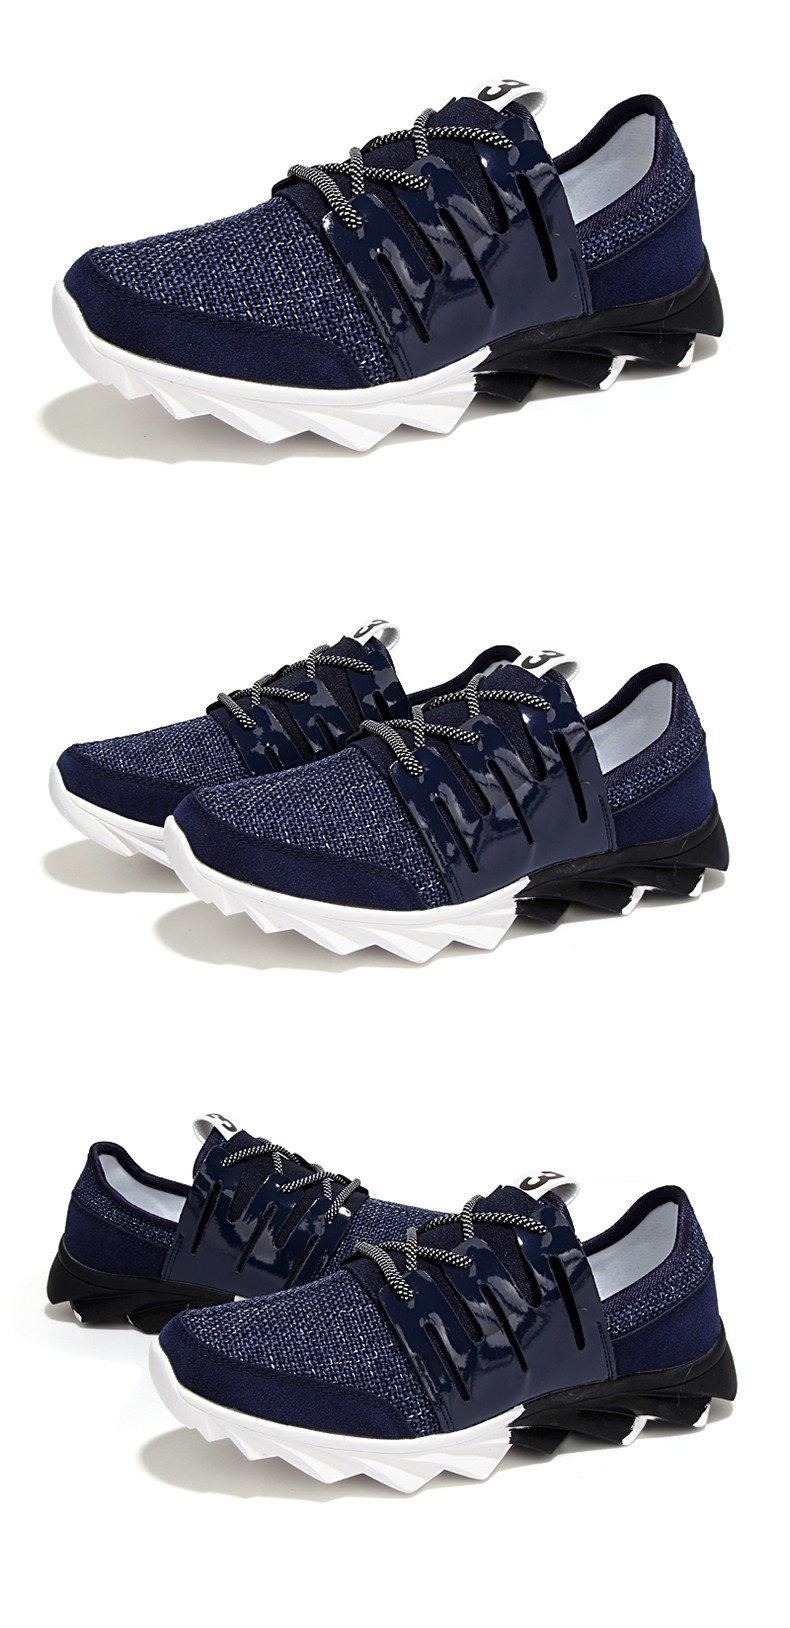 Buy 2016 New Arrival Breathable Air Mesh Men's Casual Shoes Fashion Style For Spring Summer With Knife Shape Rubber Sole cheap